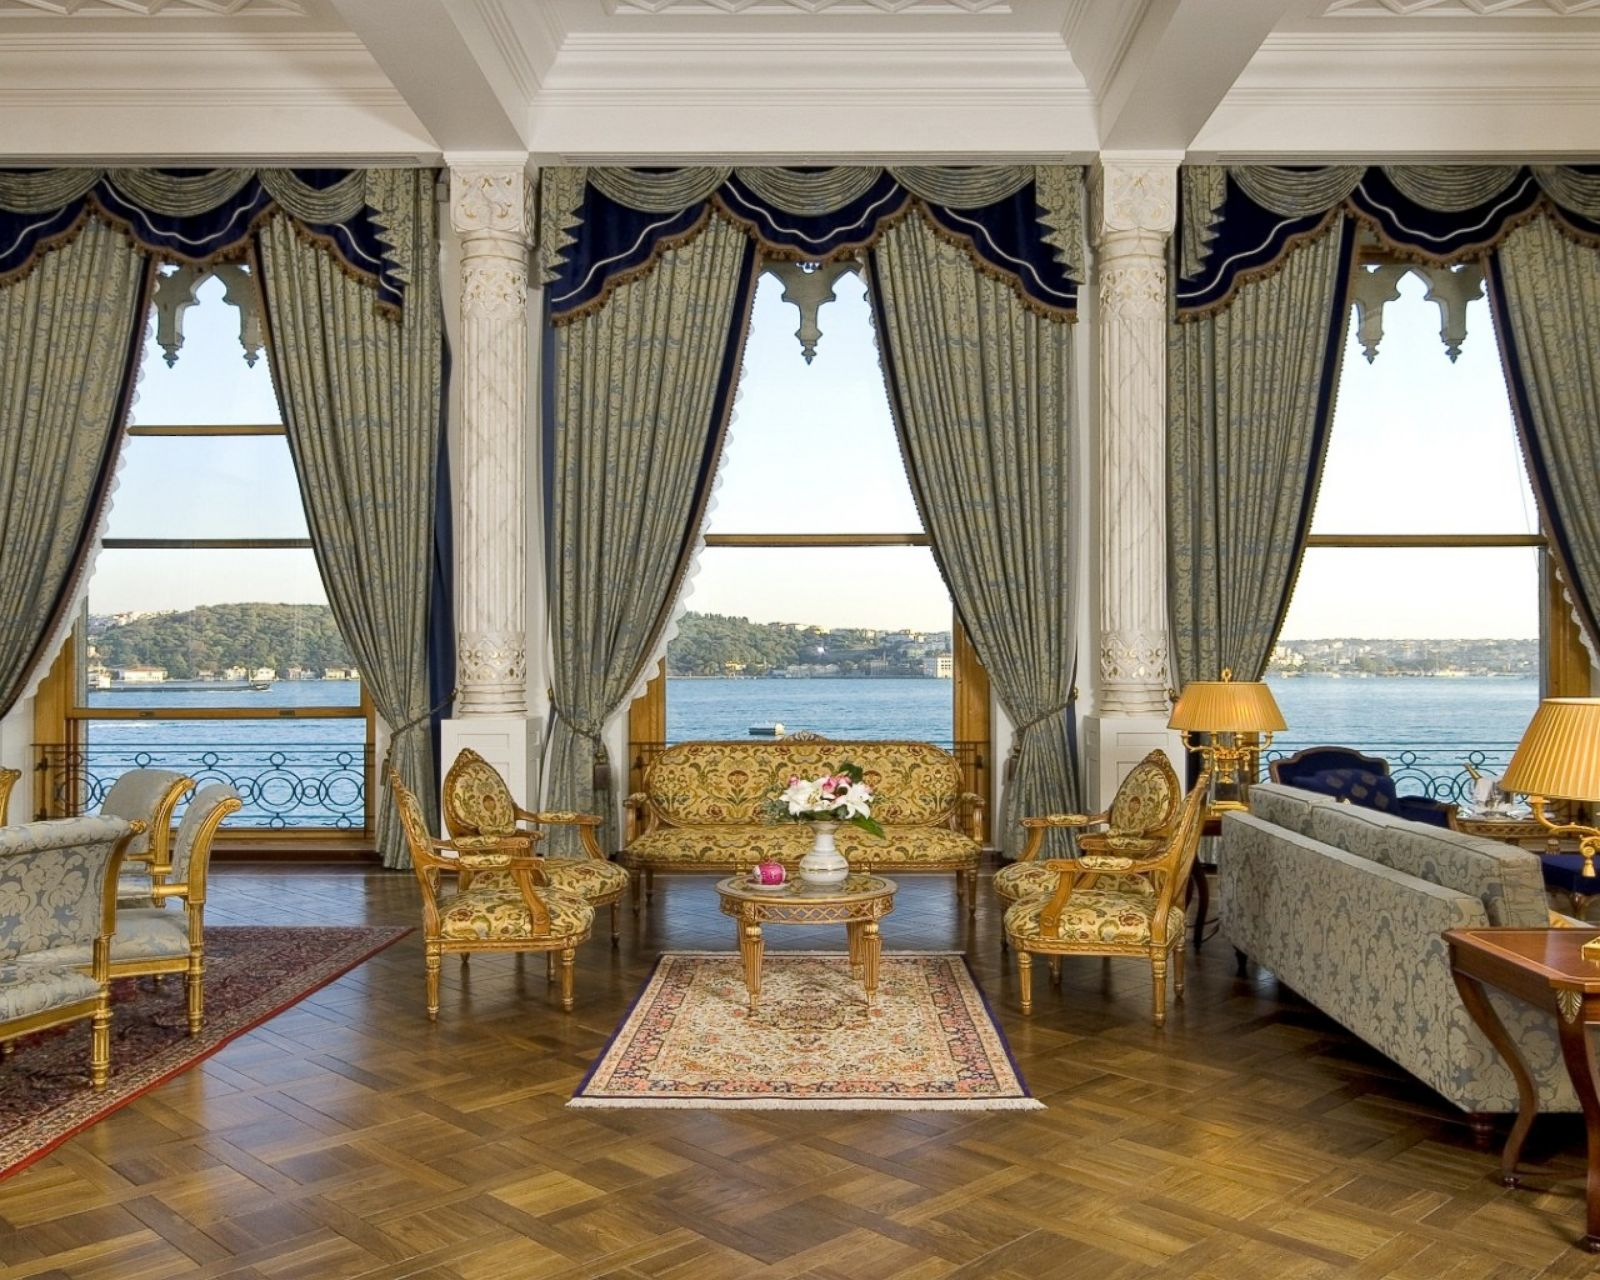 Hotel Suite of the Week: Sultan Suite at Ciragan Palace Kempinski Istanbul  Photos - ABC News